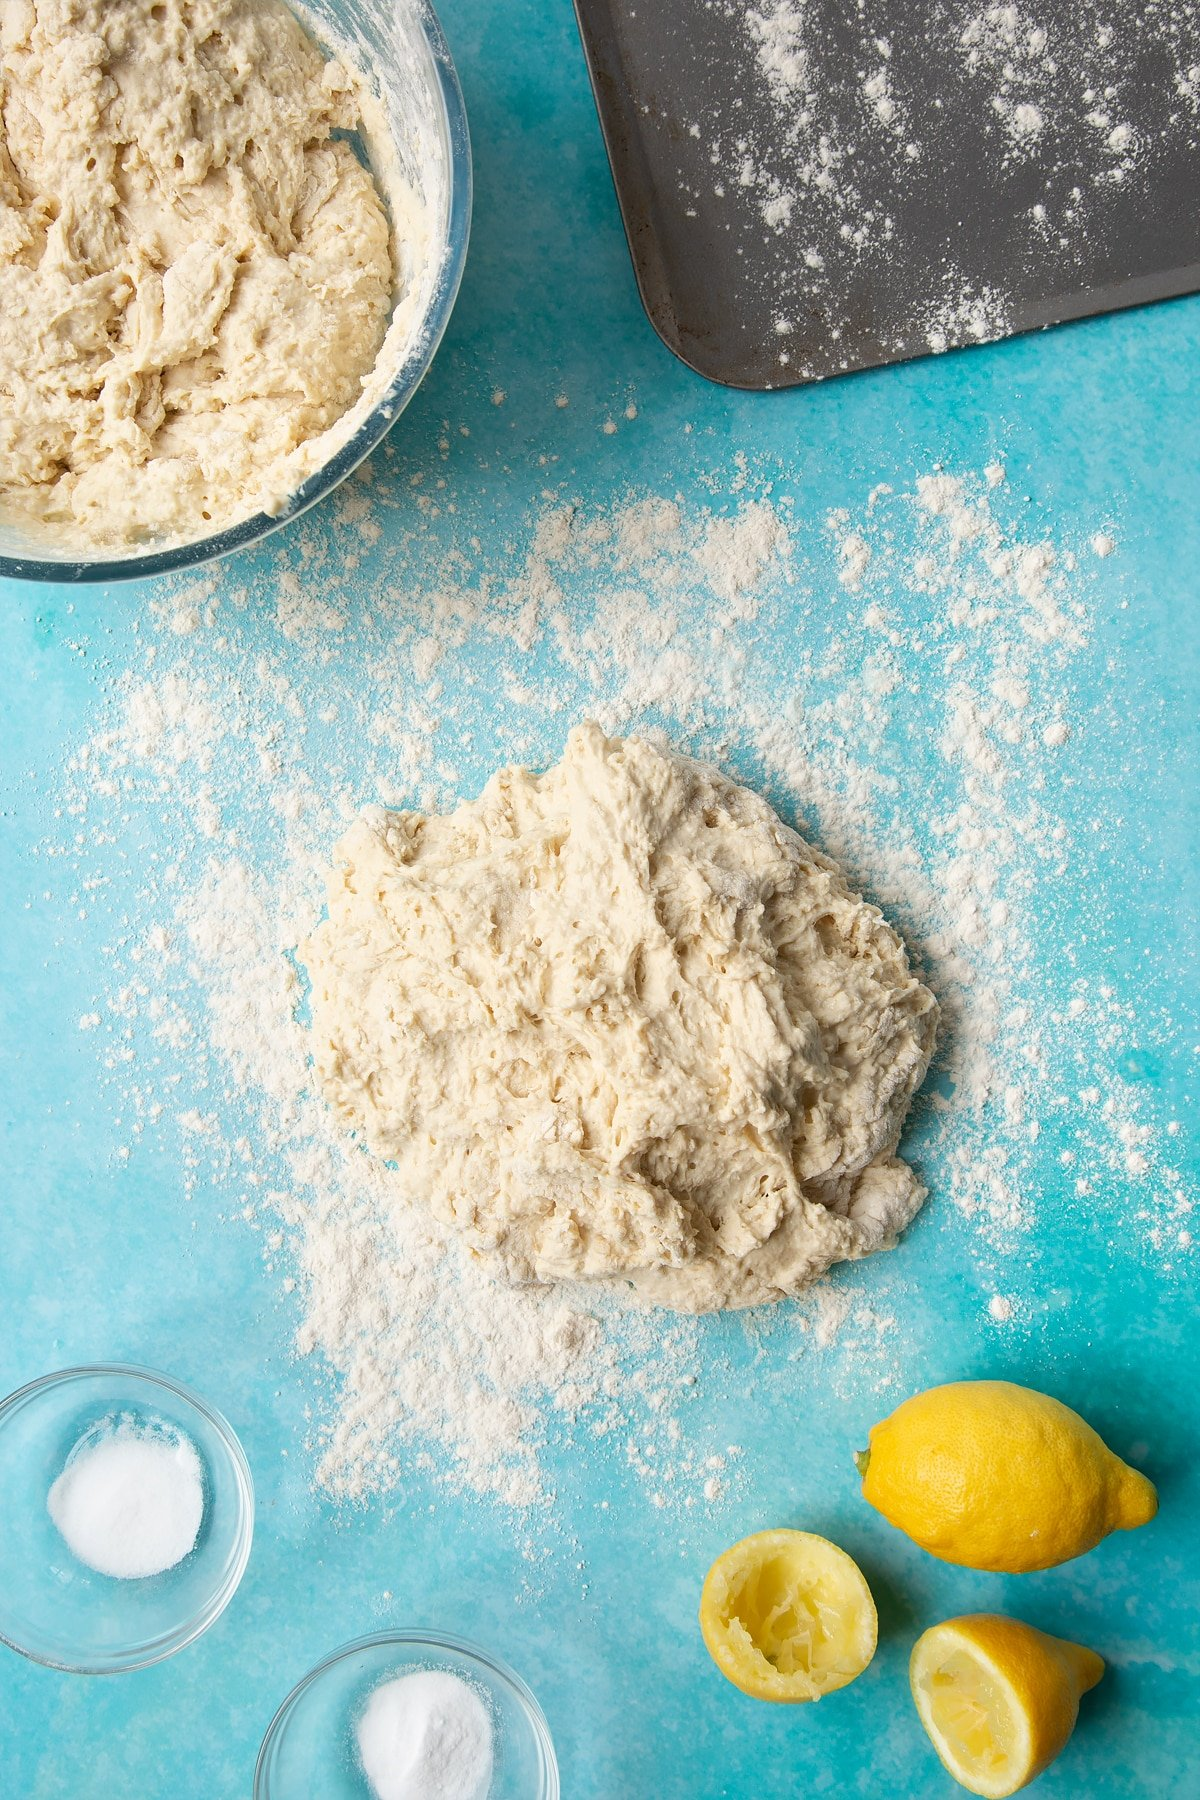 A wet dough on a floured surface surrounded by ingredients to make vegan soda bread.